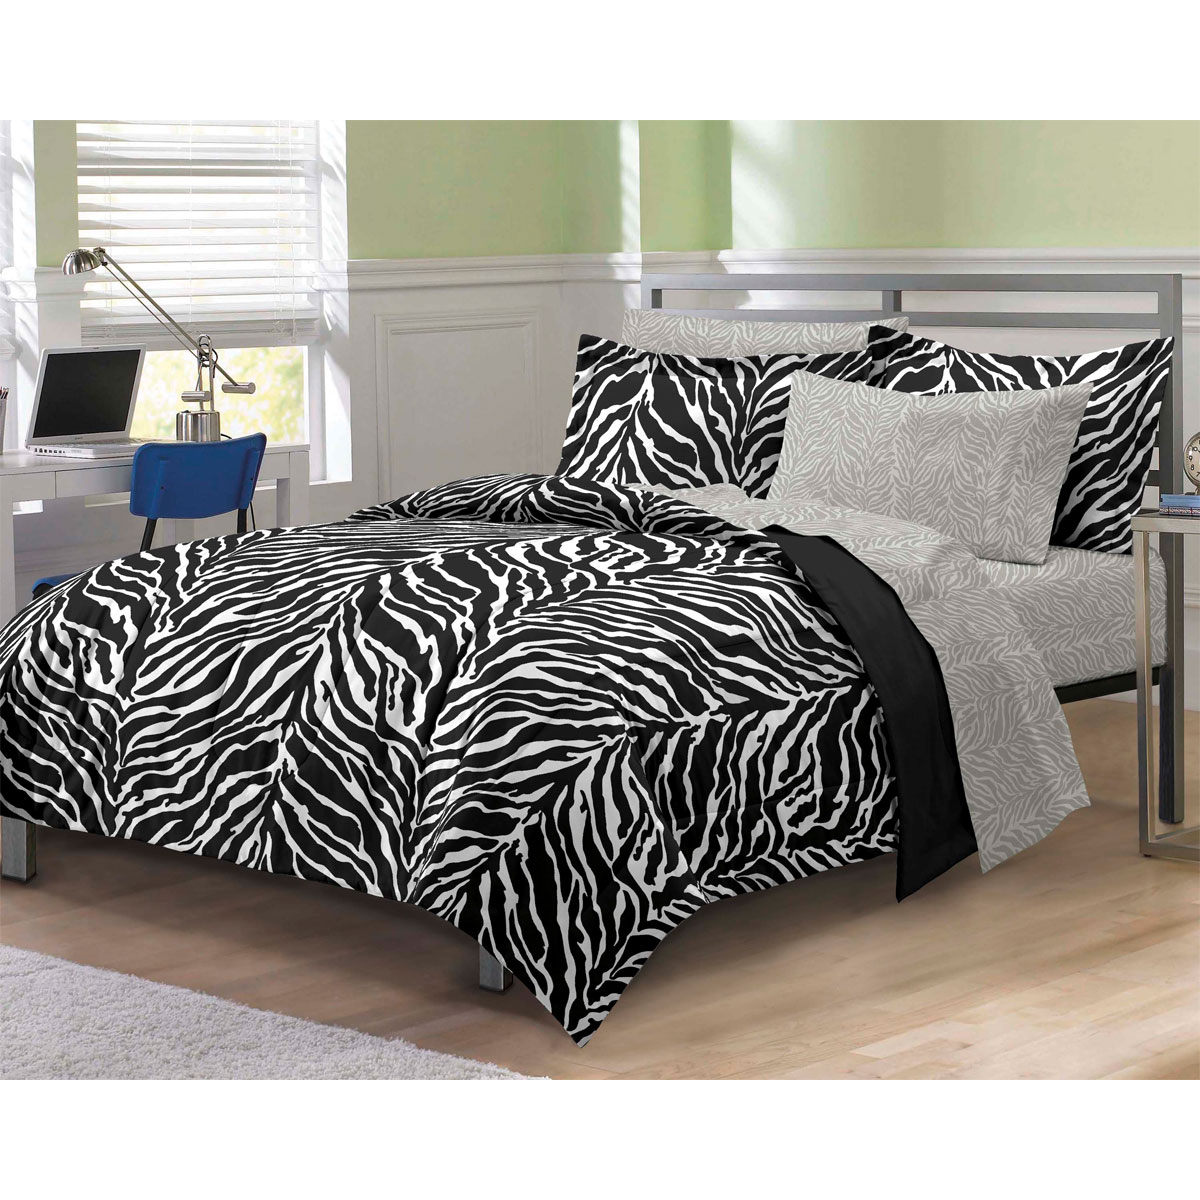 Zebra print bedding set animal stripes comforter and sheets Zebra print bedding